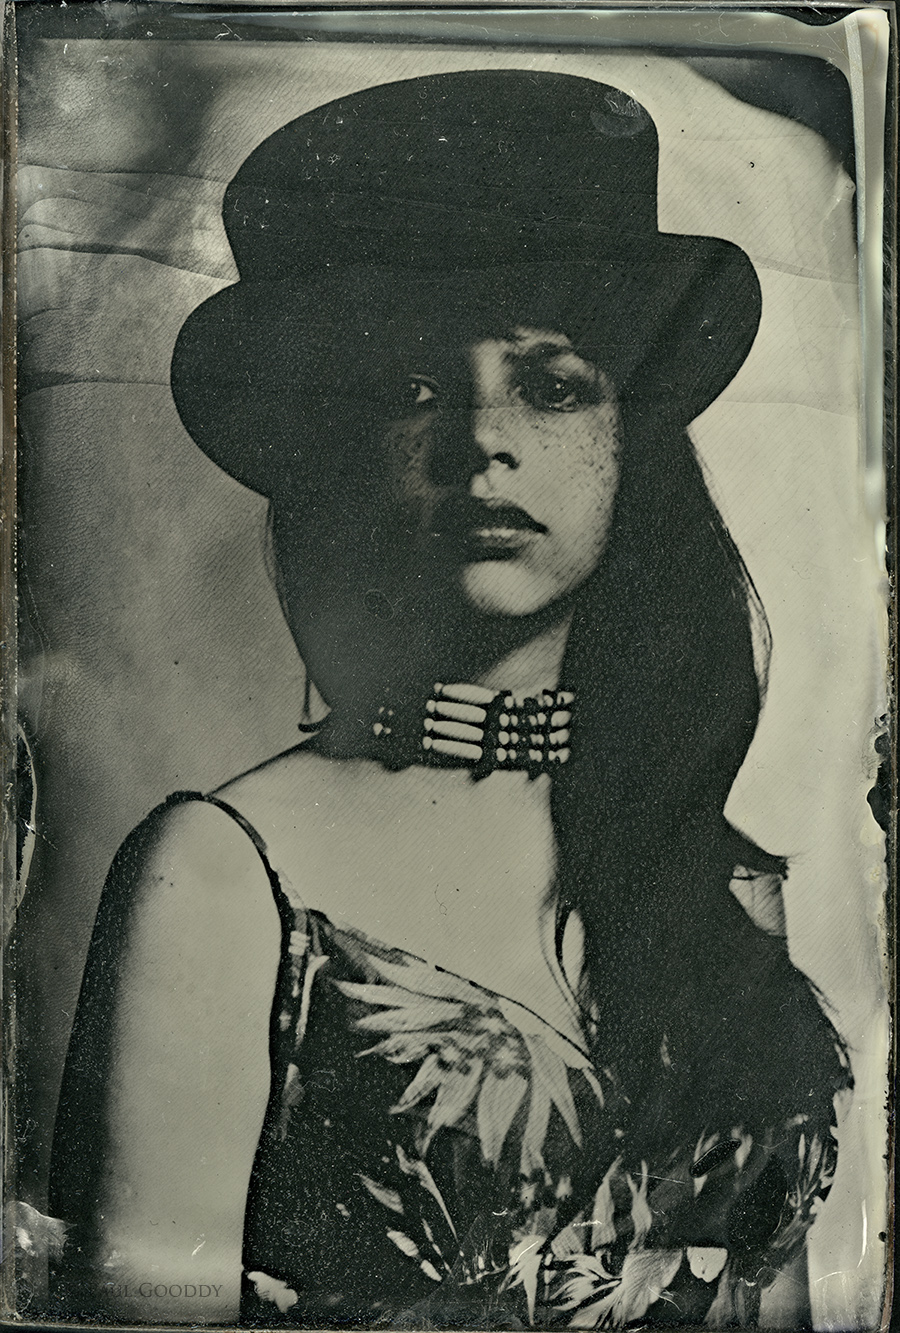 Amanda, Wet plate on glass / Photography by Paul Gooddy / Uploaded 18th September 2014 @ 08:12 AM